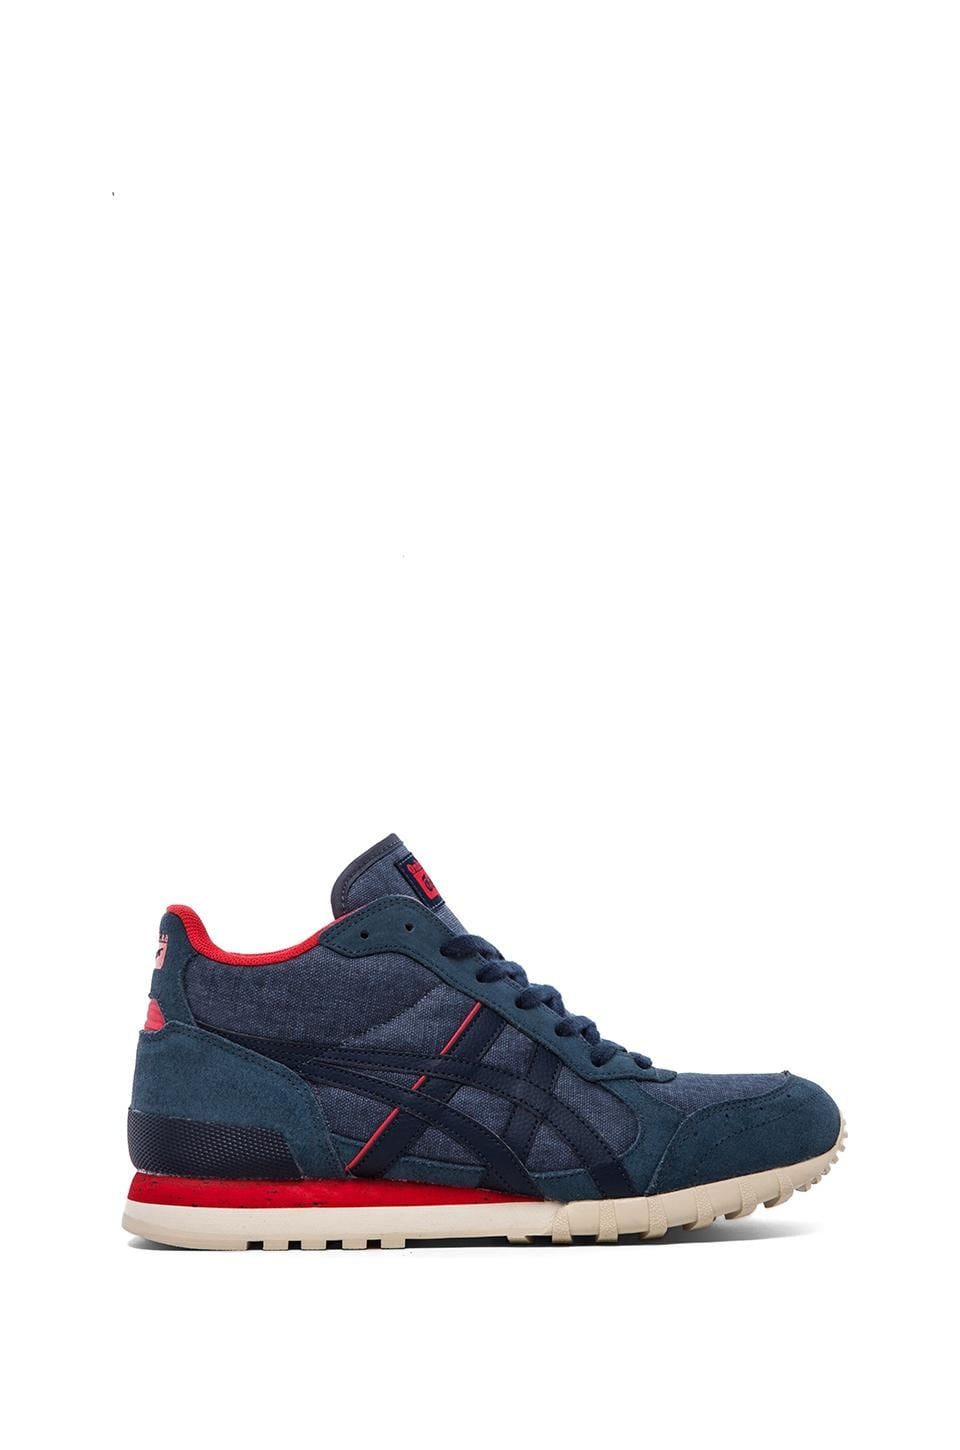 Onitsuka Tiger Colorado Eighty-Five MT in Bering Sea & Navy